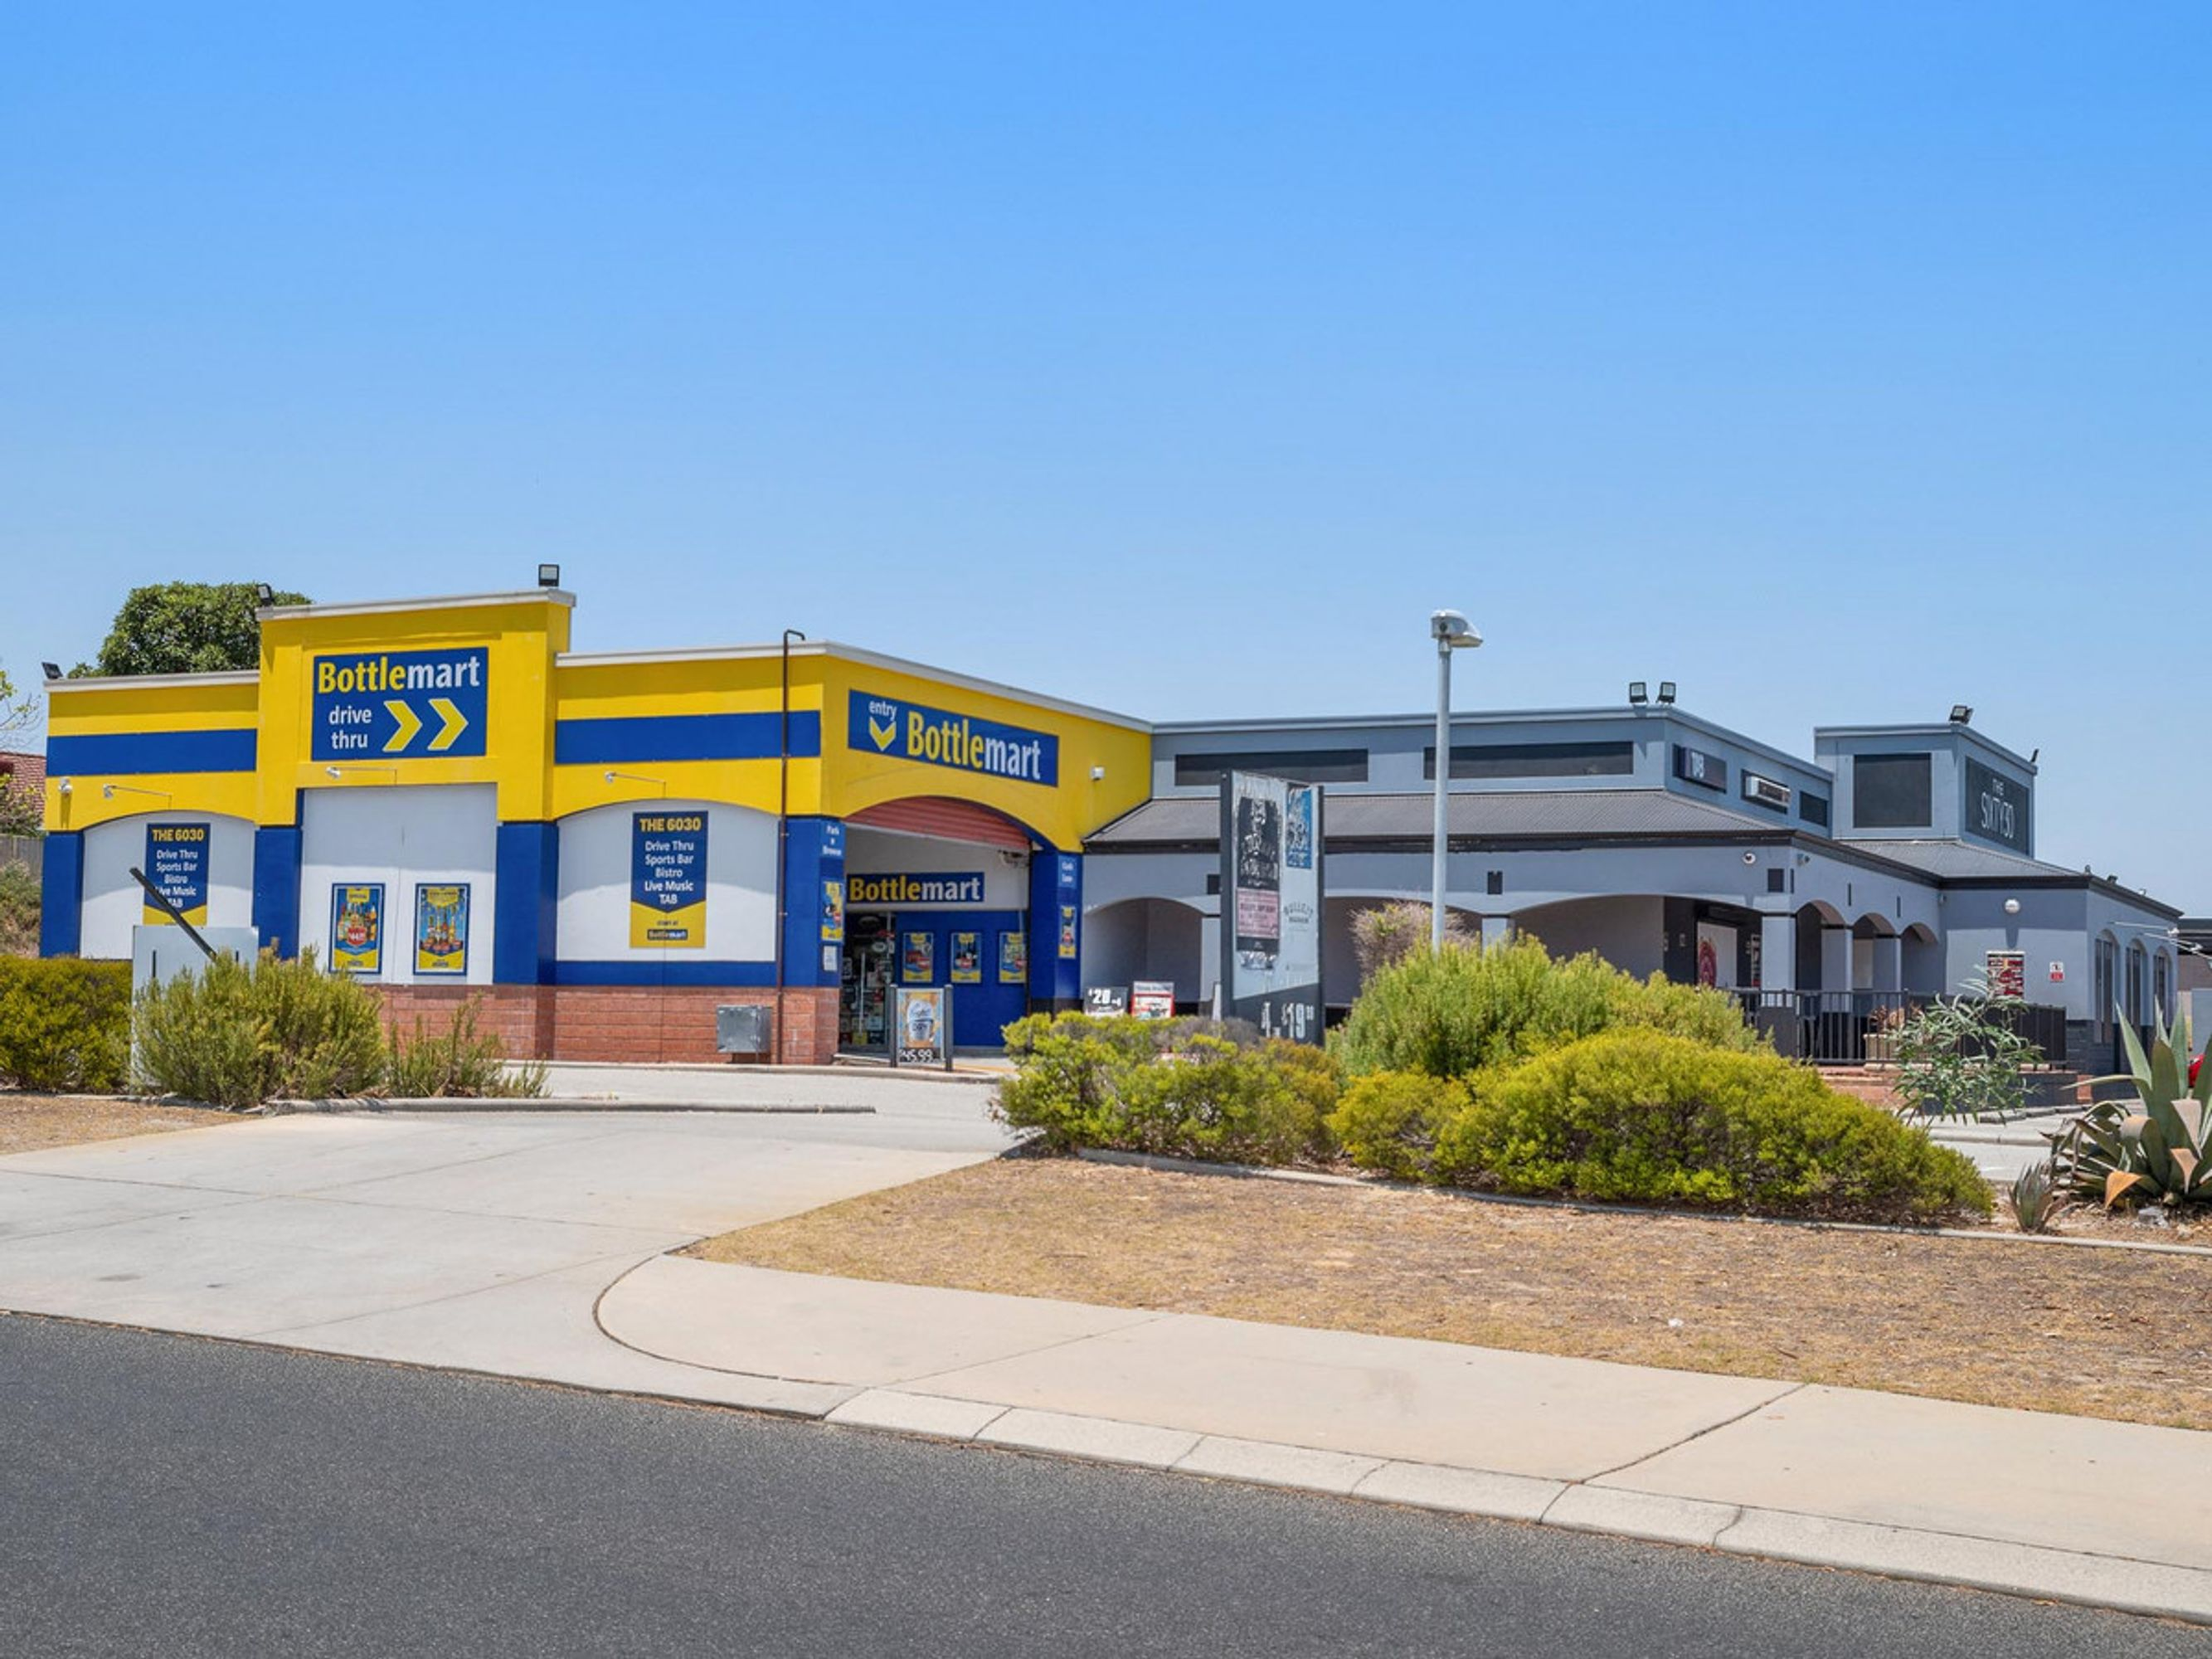 36 Baltimore Parade, Merriwa, WA 6030